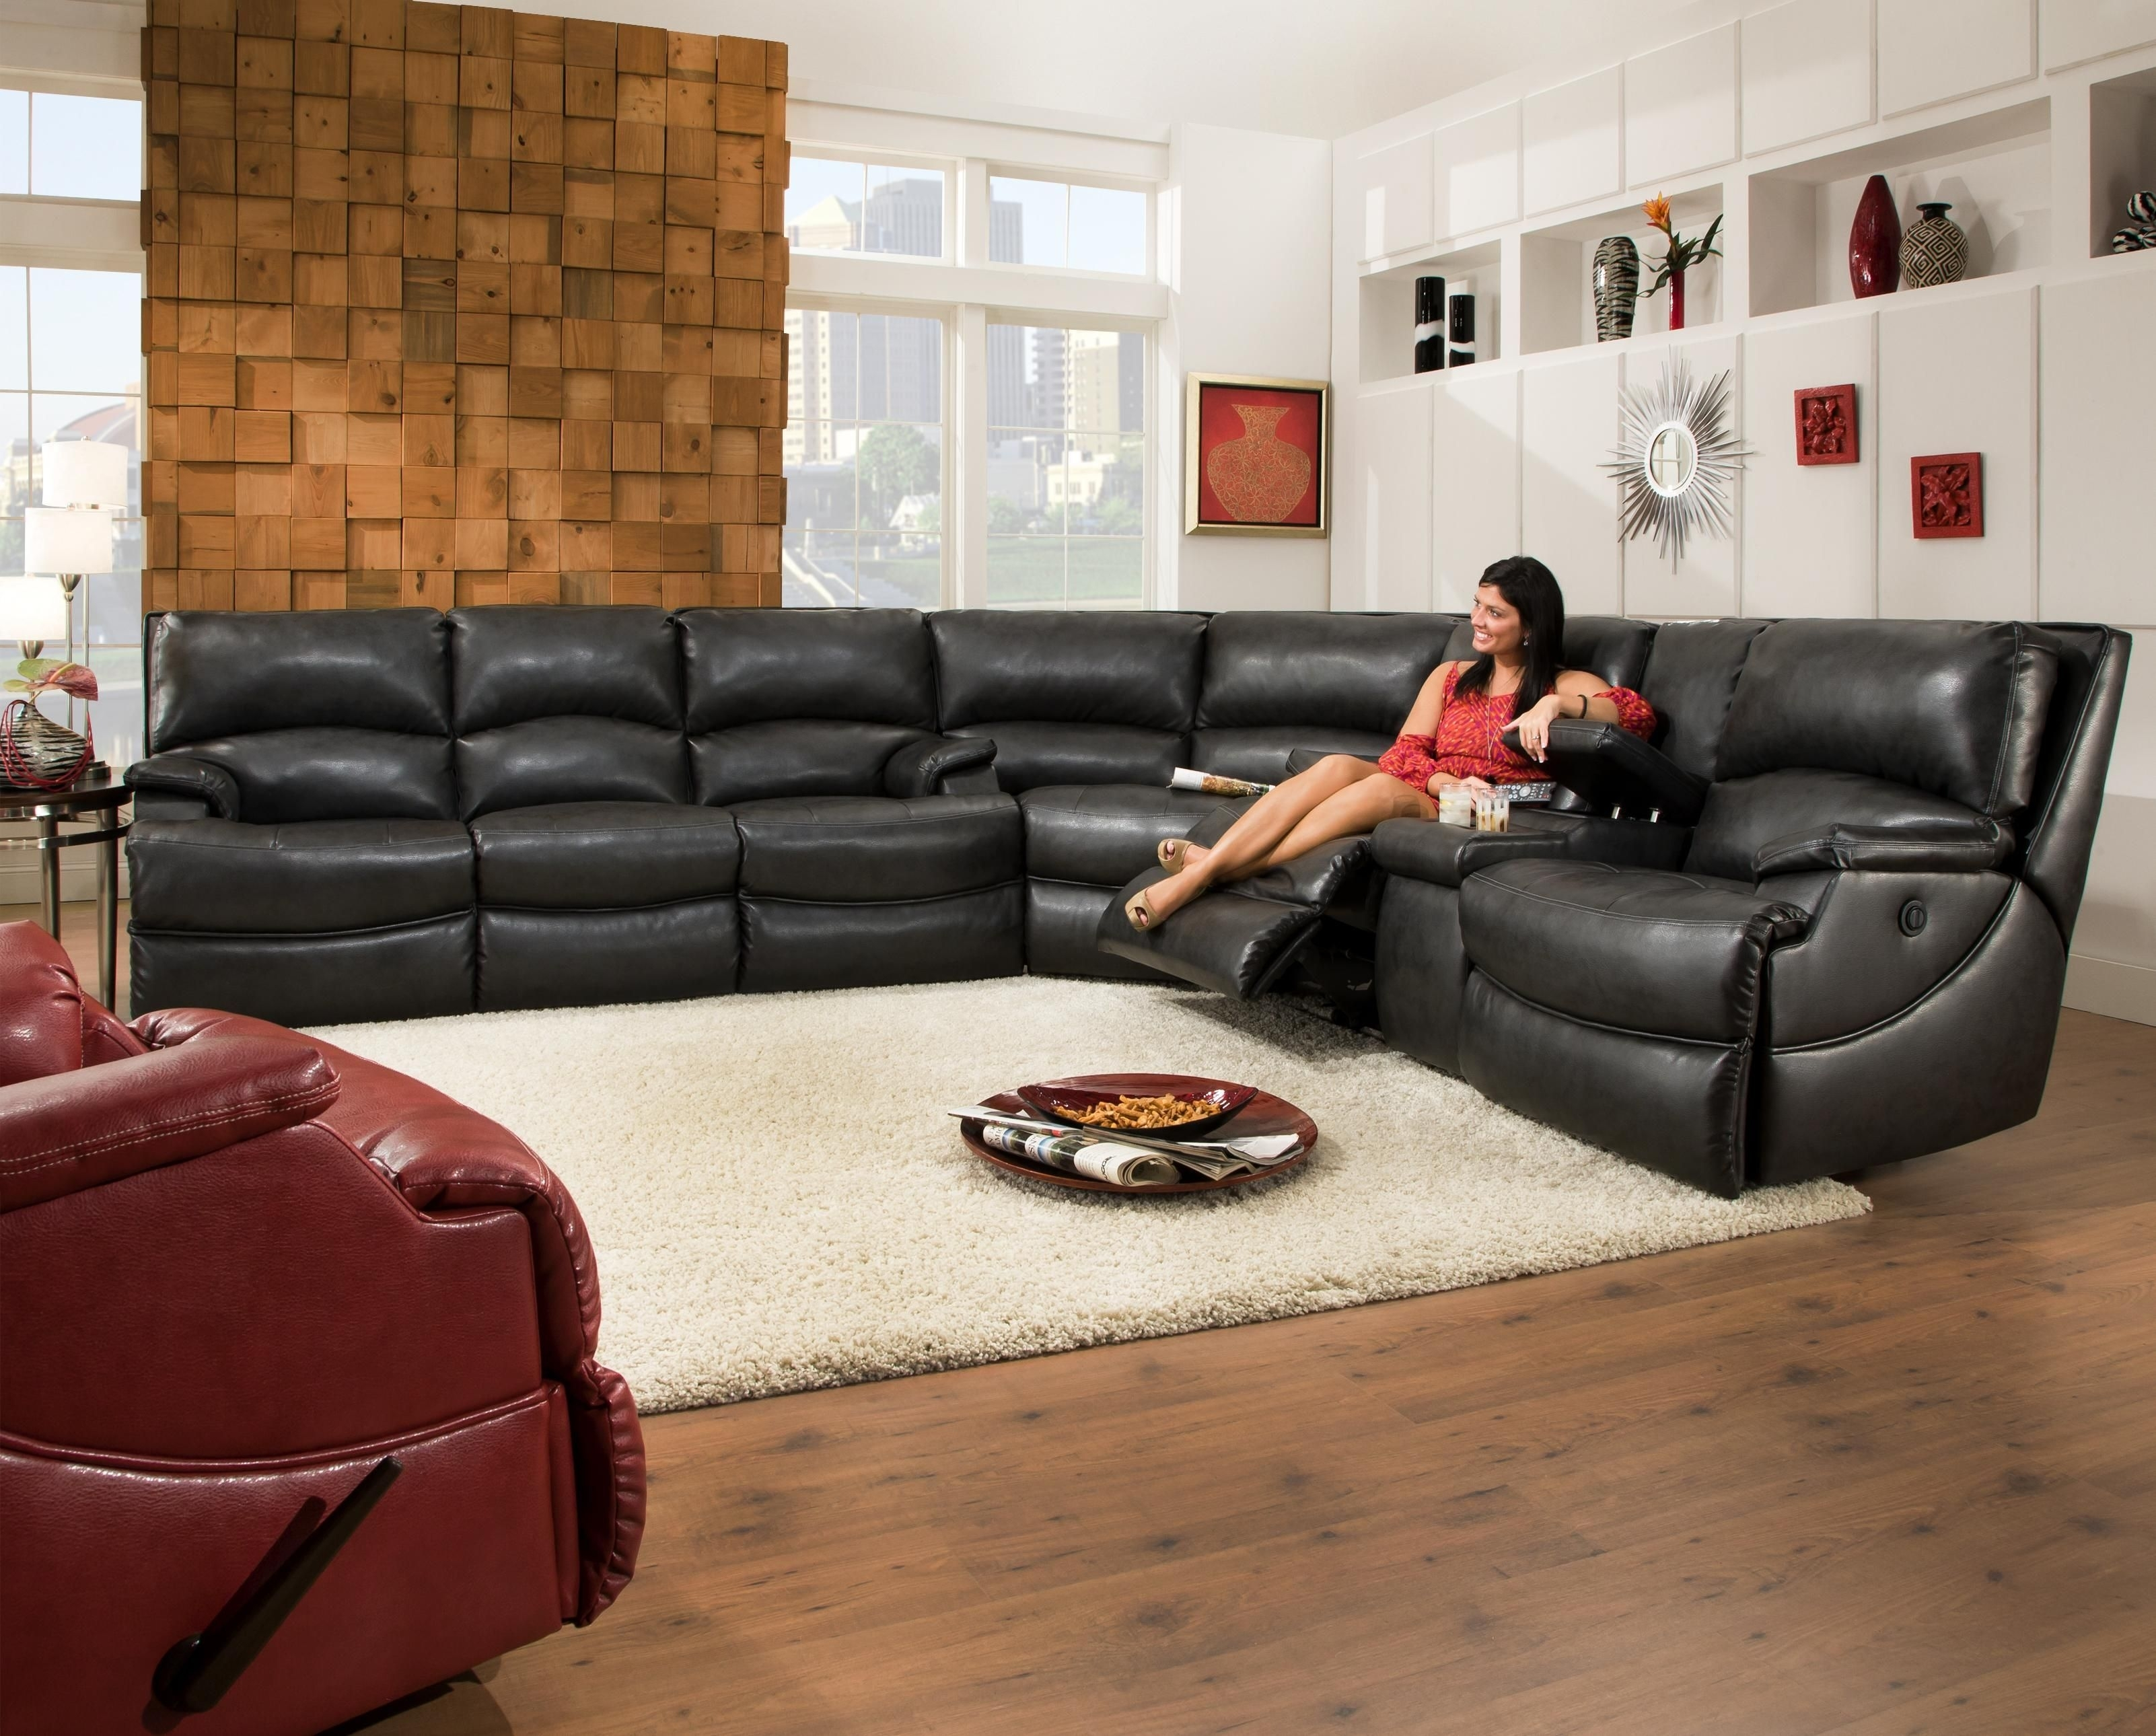 Popular Photo of Sectional Sofas With Cup Holders